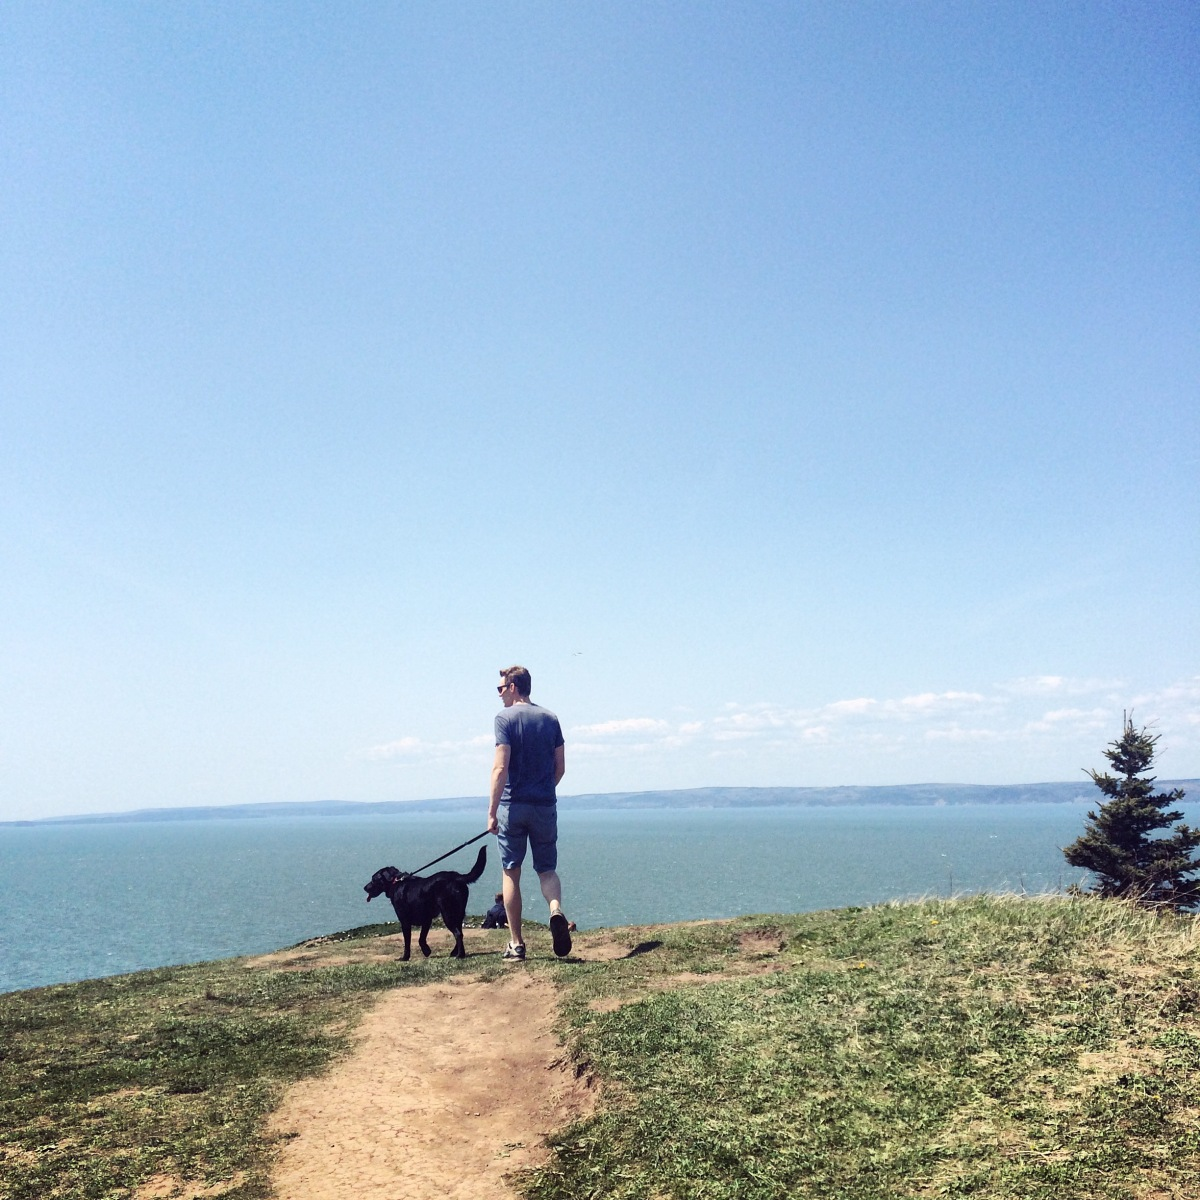 Hiking with dogs at Cape Split, Nova Scotia! This trail is dog-friendly